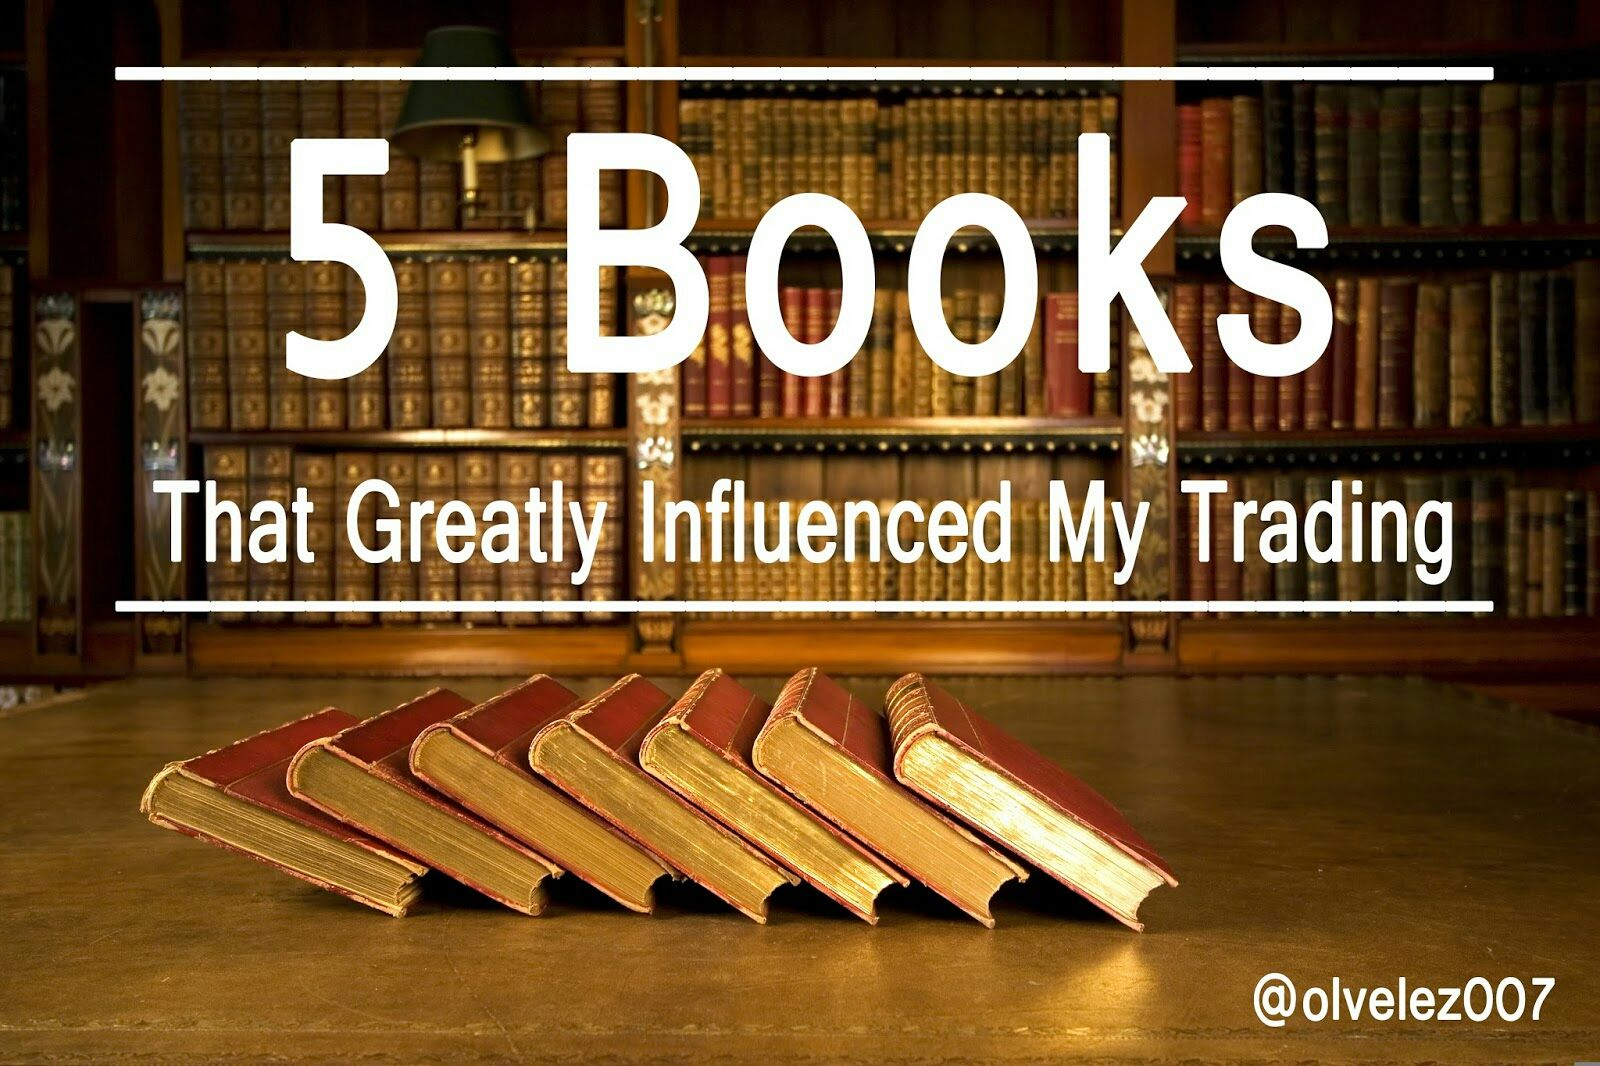 These 5 books helped shape me as a trader in more ways than one.  Maybe they can help you. http://blog.olivervelez.com/2016/01/the-5-books-that-had-great-influence-on.html?m=1